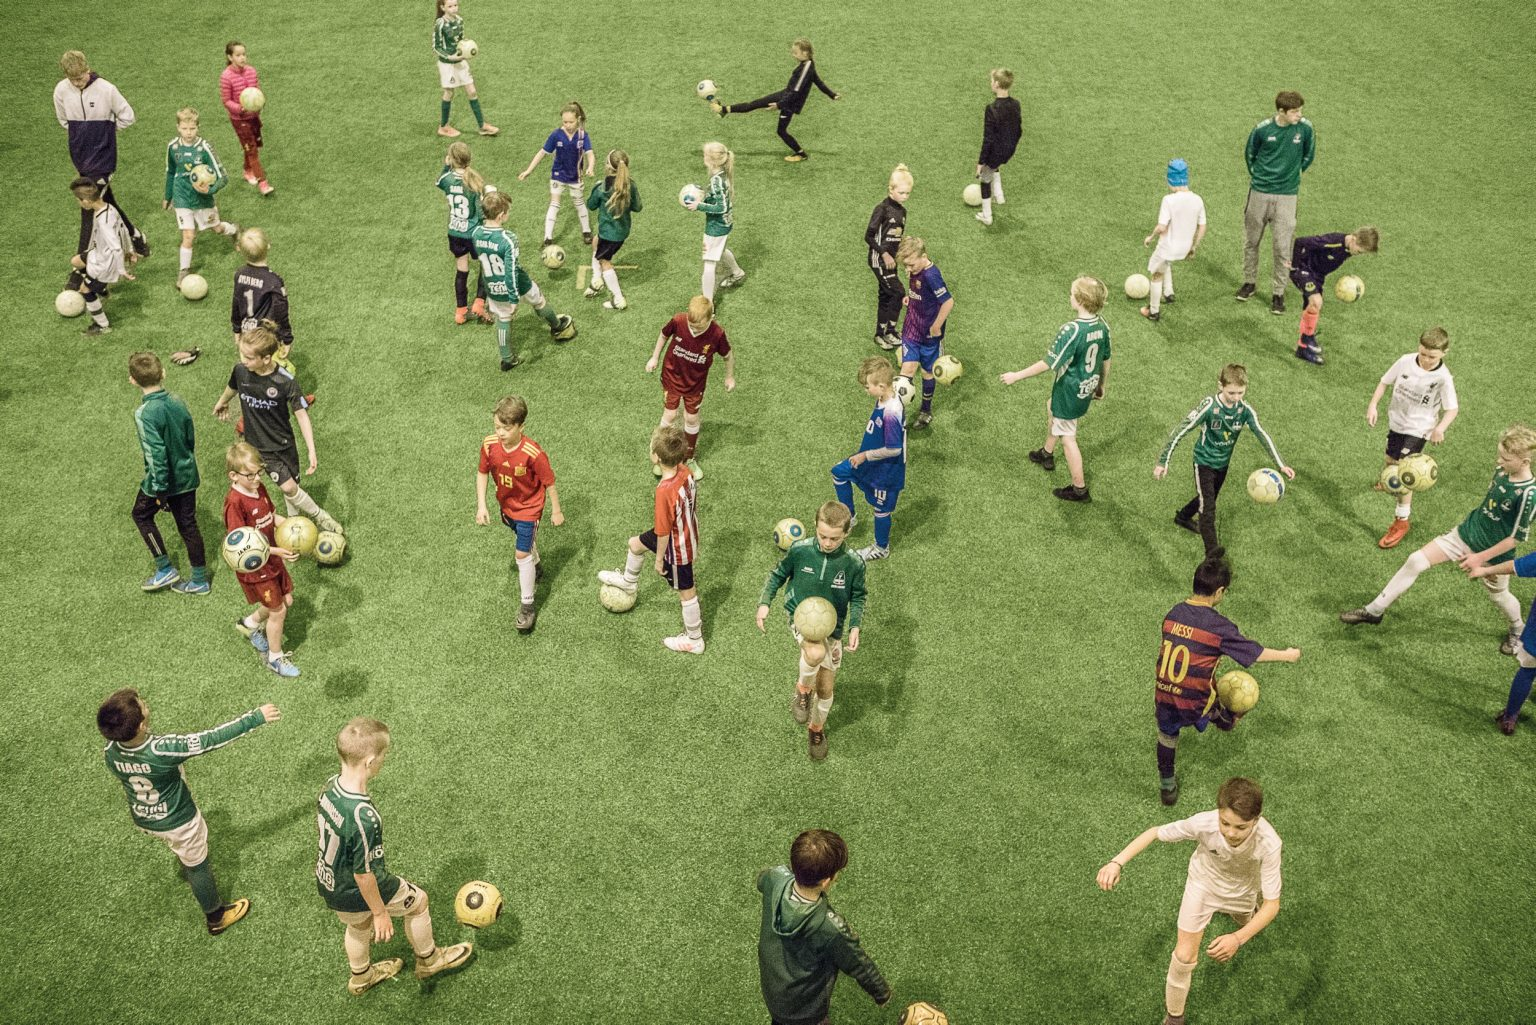 When the weather it's bad, up to 200 children at the same time train on the indoor Breidablik field. Kópavogur, Iceland, 2018